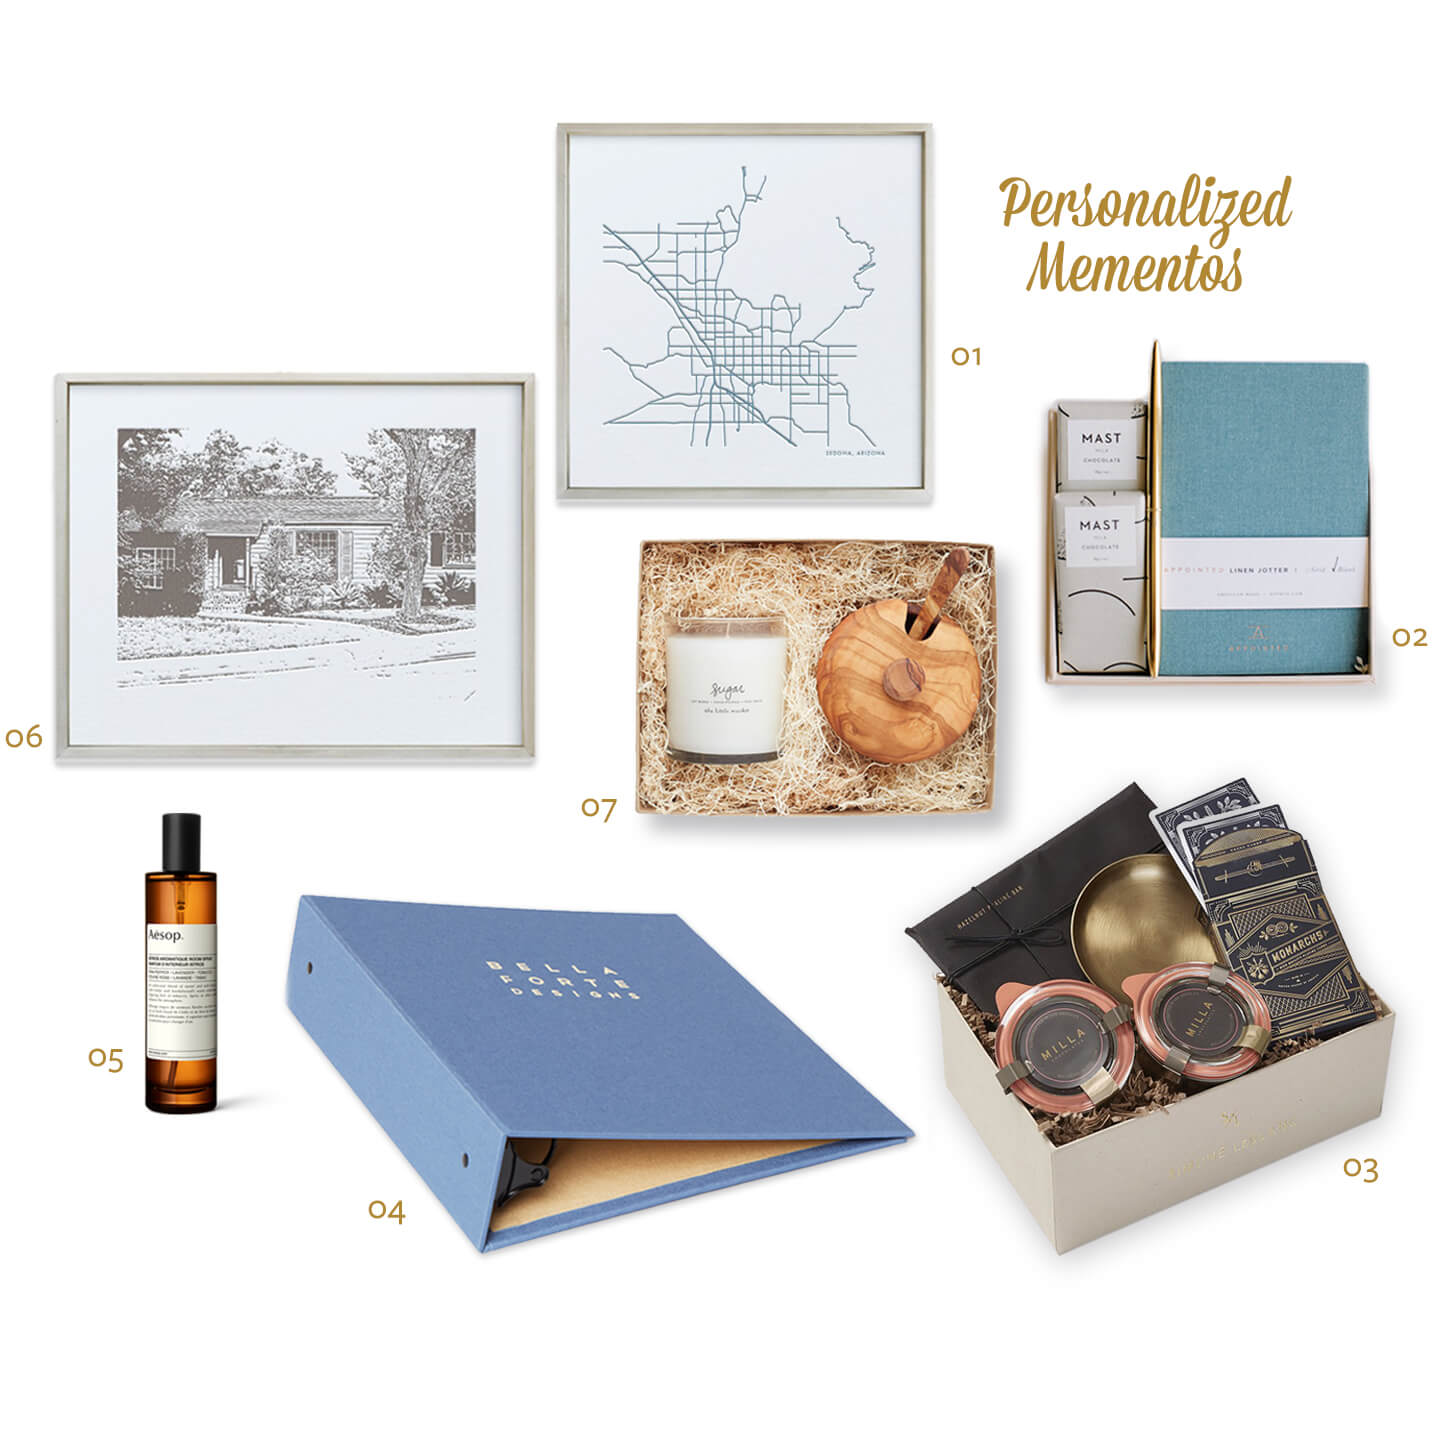 01   Minted  custom map , $41+     02   BOXFOX  Grazie box , $34   03   Simone LeBlanc  Celebration Suite  box, $75   04   Bella Forte Design  binder , $80+     05   Aesop  room spray , $55  06   Minted  house portrait , $41+     07   The Little Market  Sugar Sugar box , $68